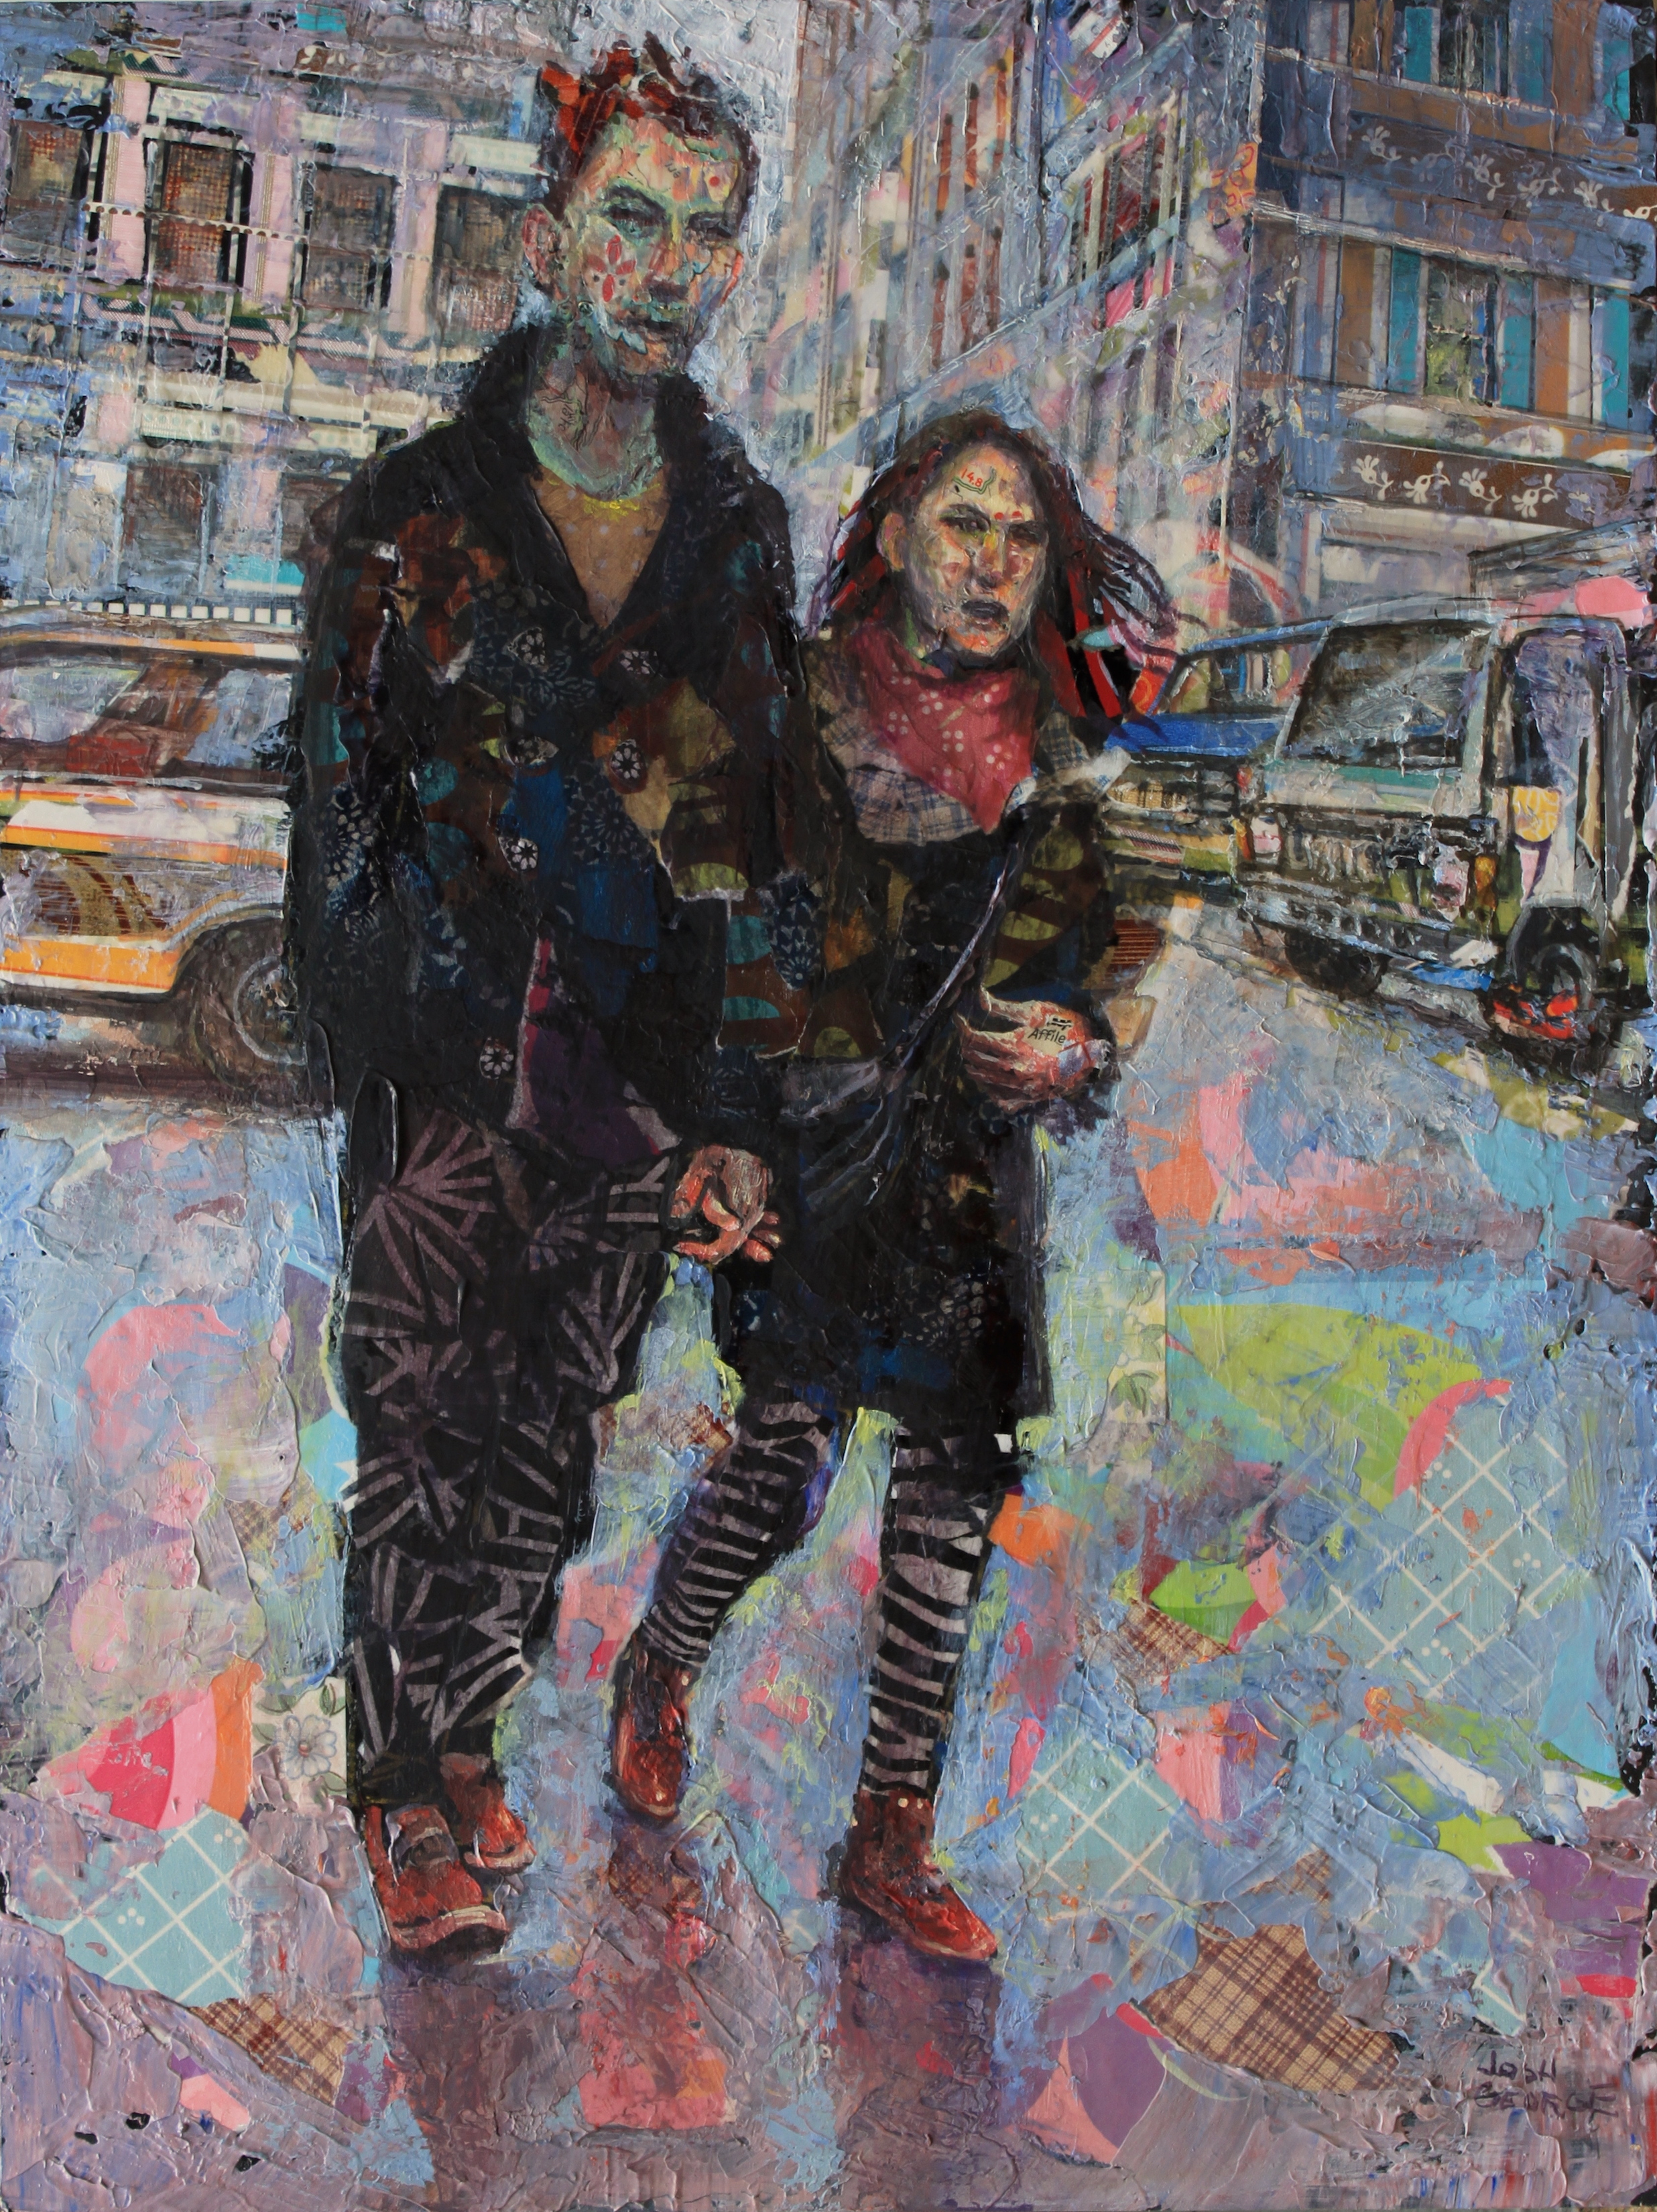 JOSH GEORGE %22Let's Take a Walk and Hold Hands%22 16%22 x 12%22 mixed media on wood panel $1300.JPG